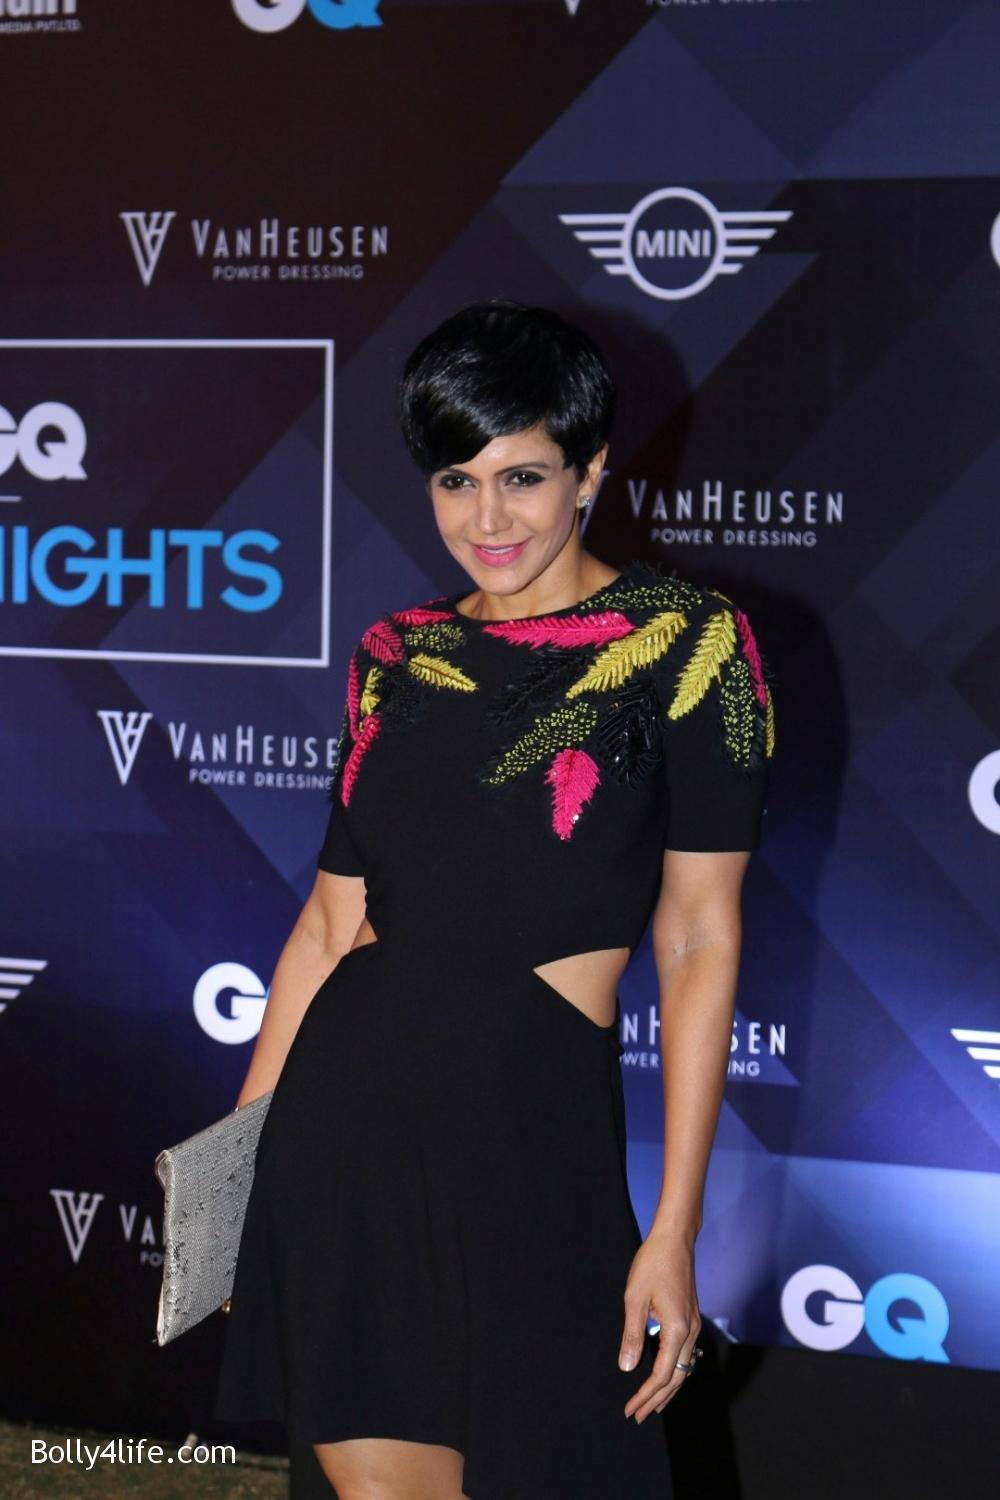 Mandira-Bedi-during-the-Van-Heusen-GQ-Fashion-Nights-in-Mumbai-1.jpg